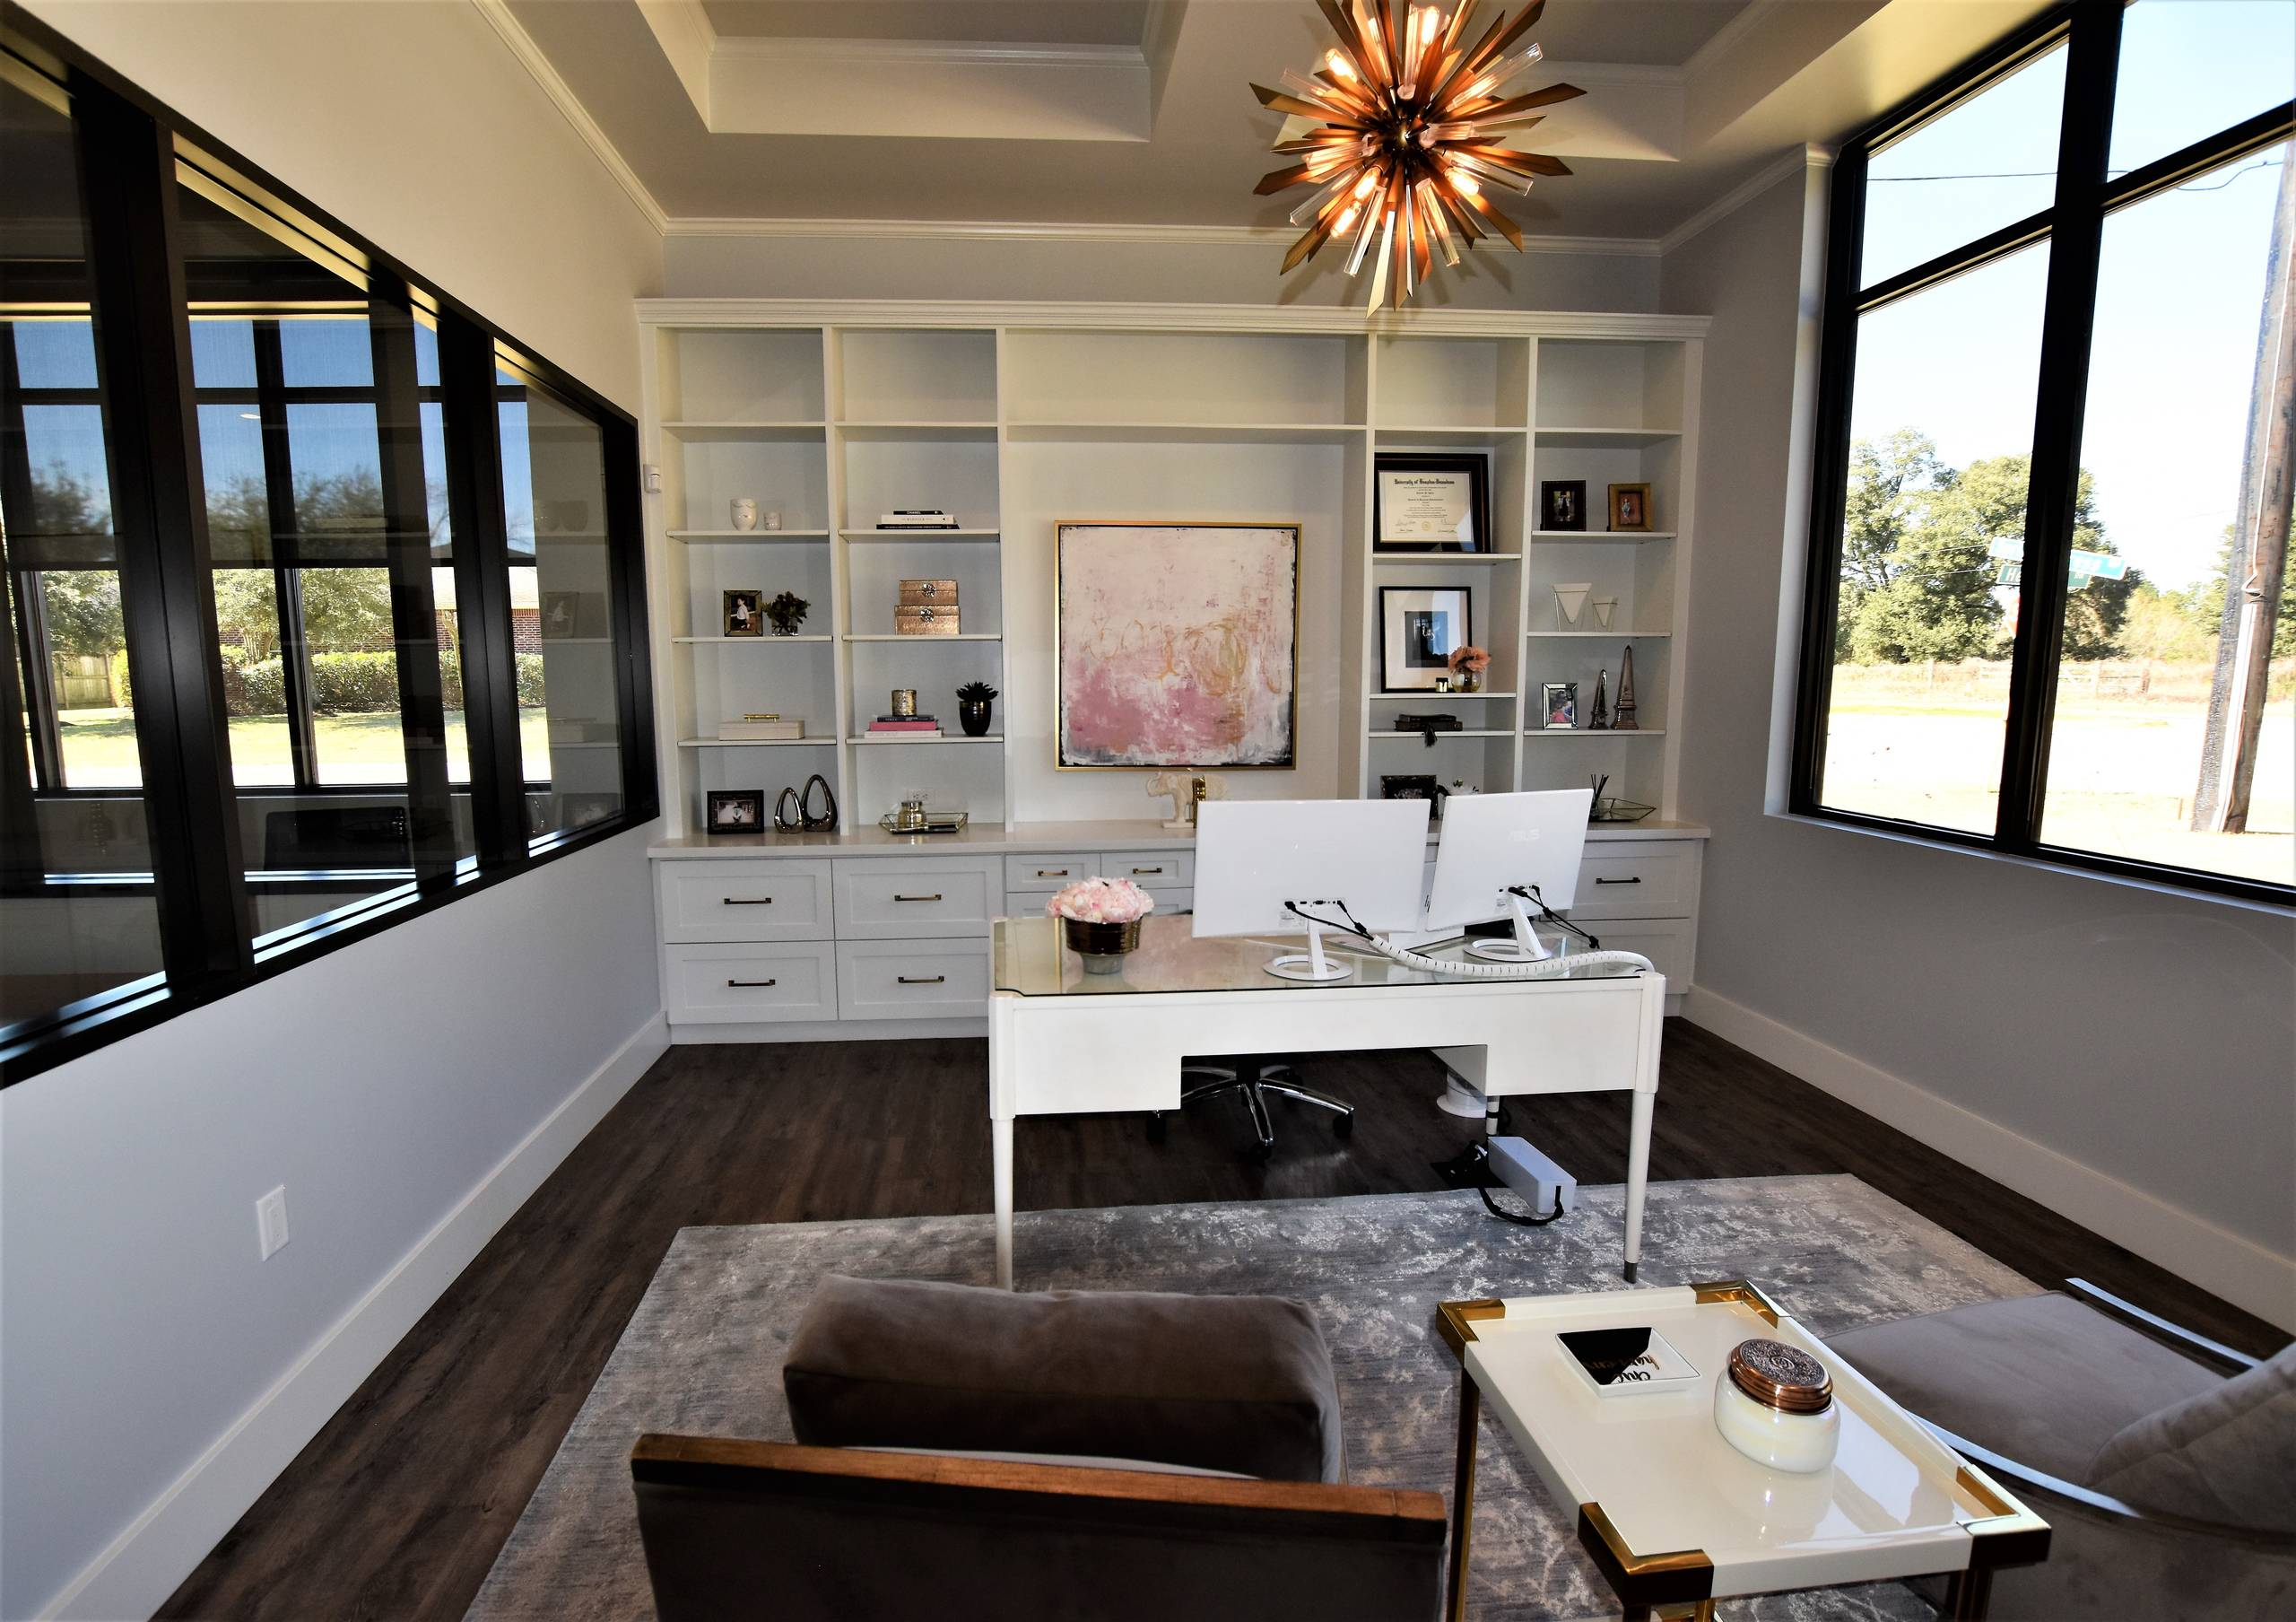 Residential Design for Mortgage Company